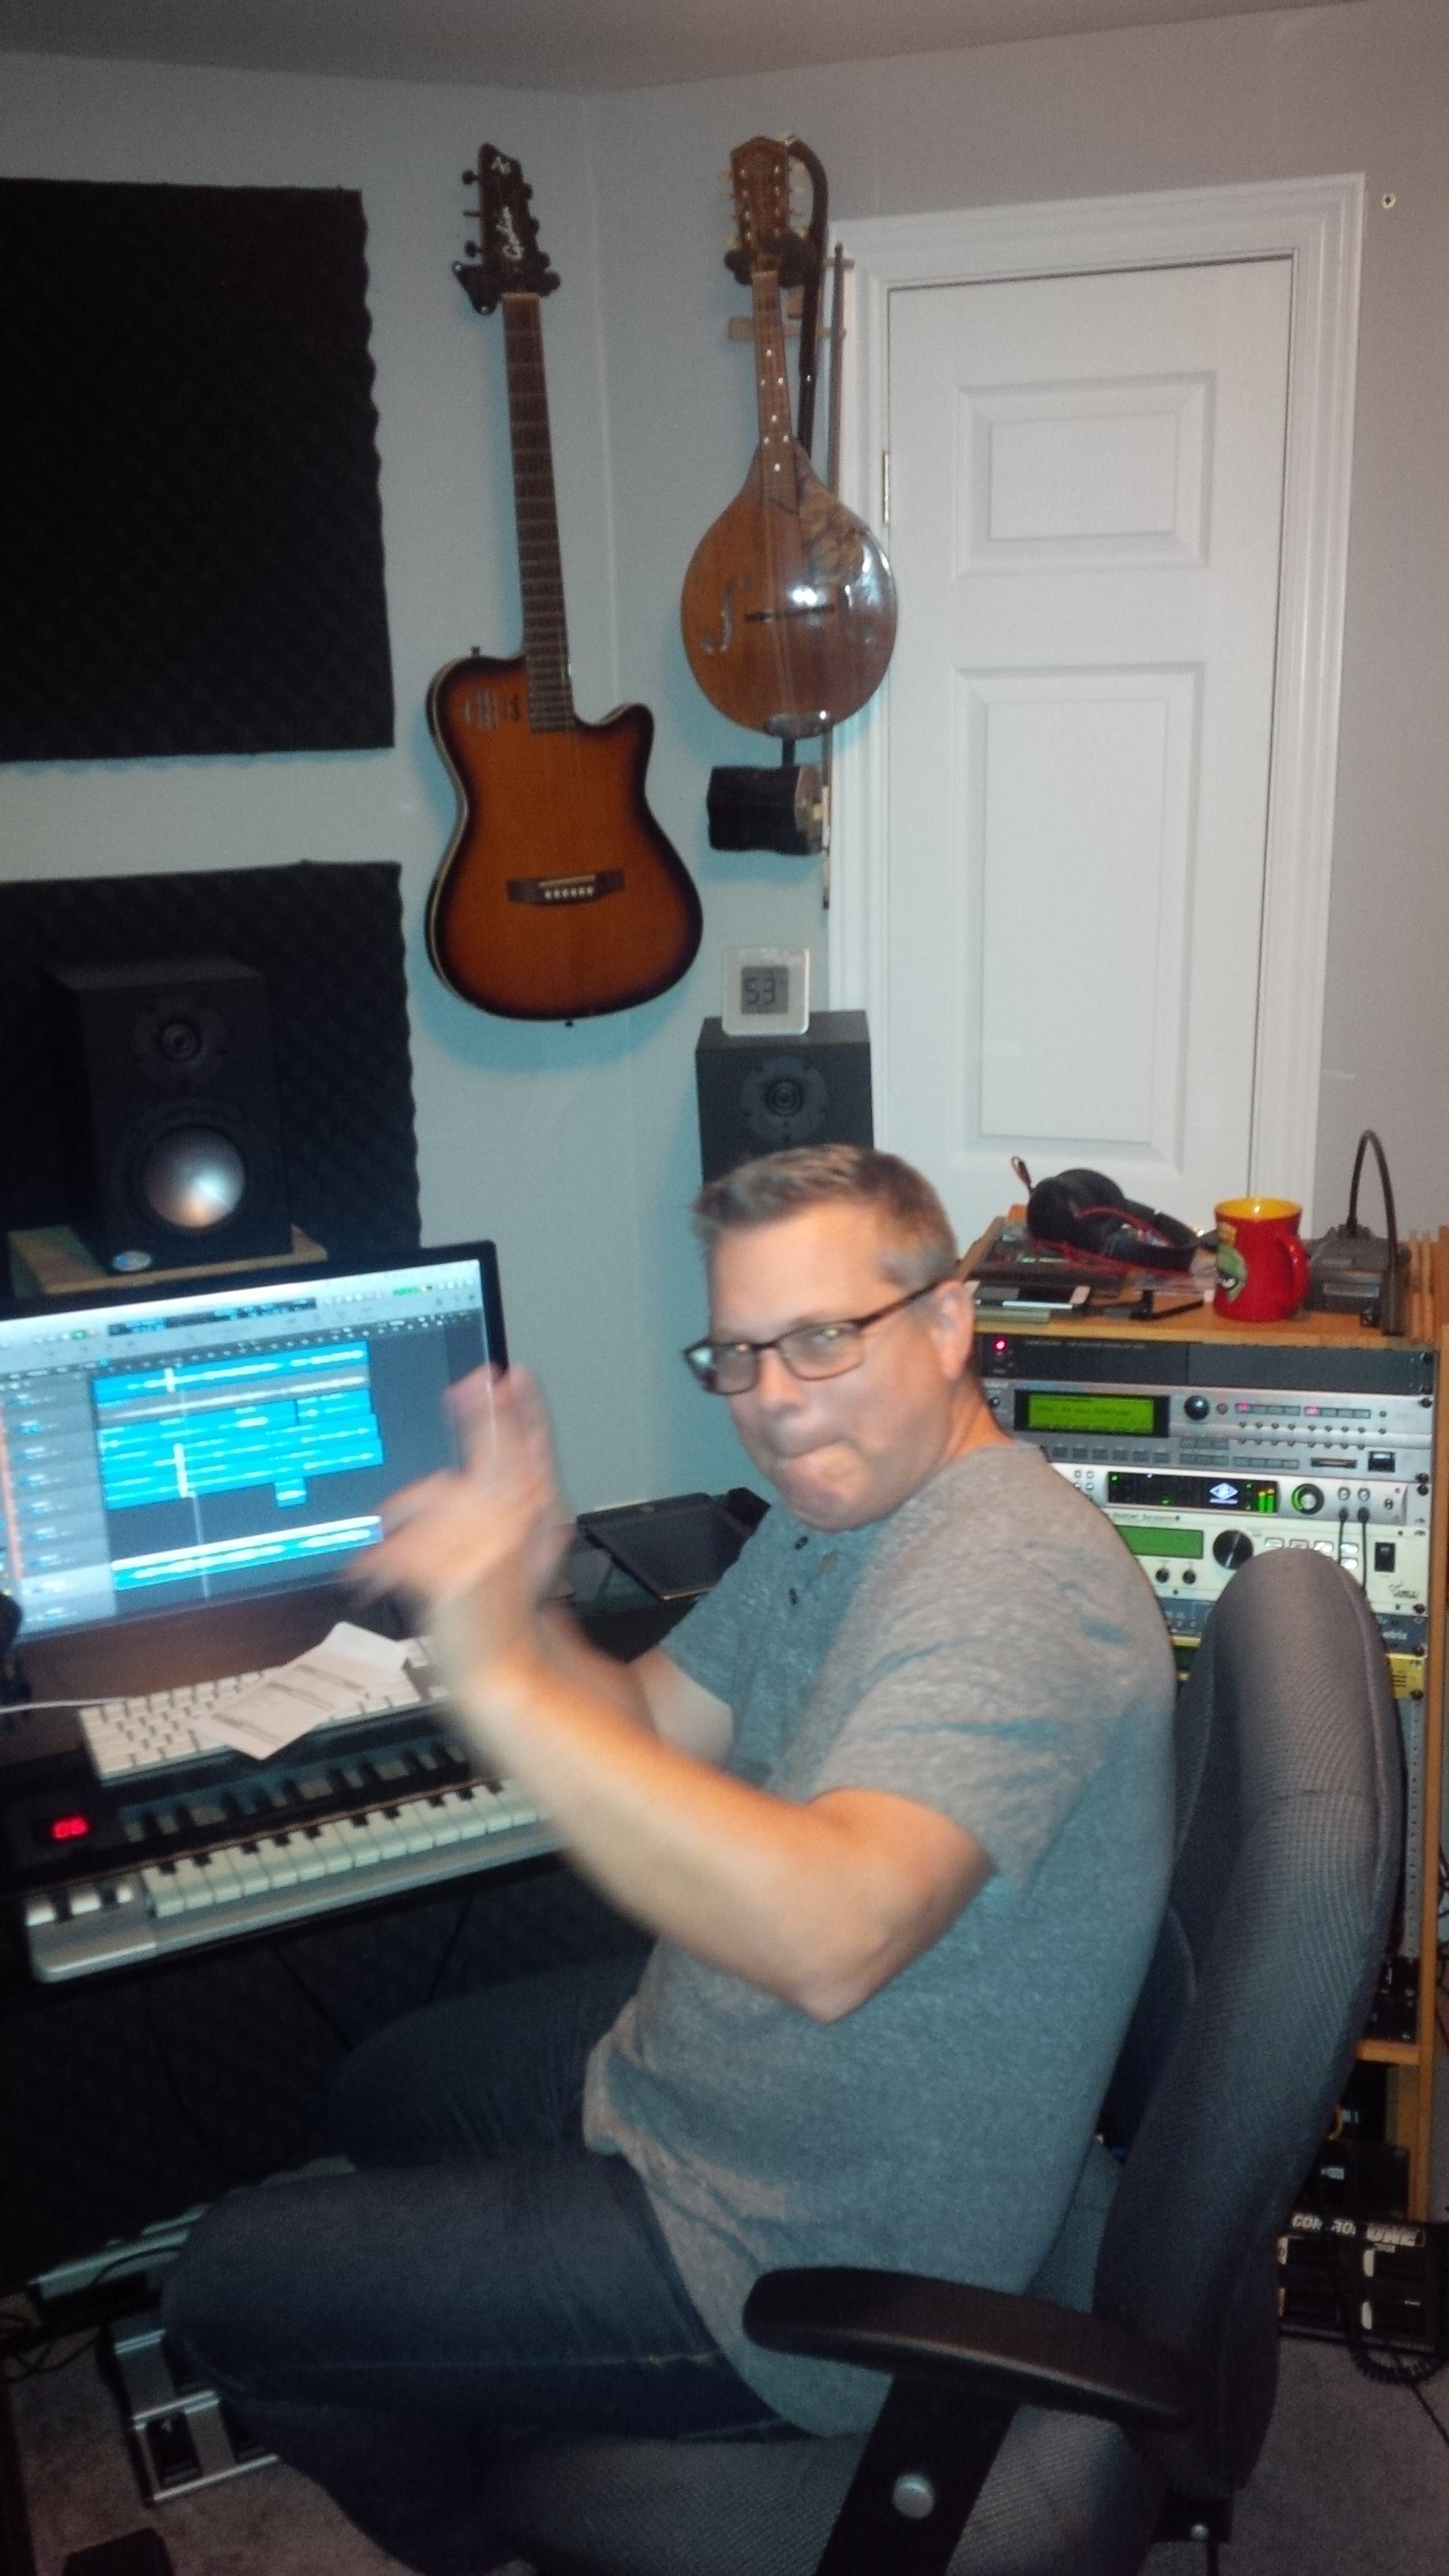 Producer Peter Boshart waving the wand and making some magic.